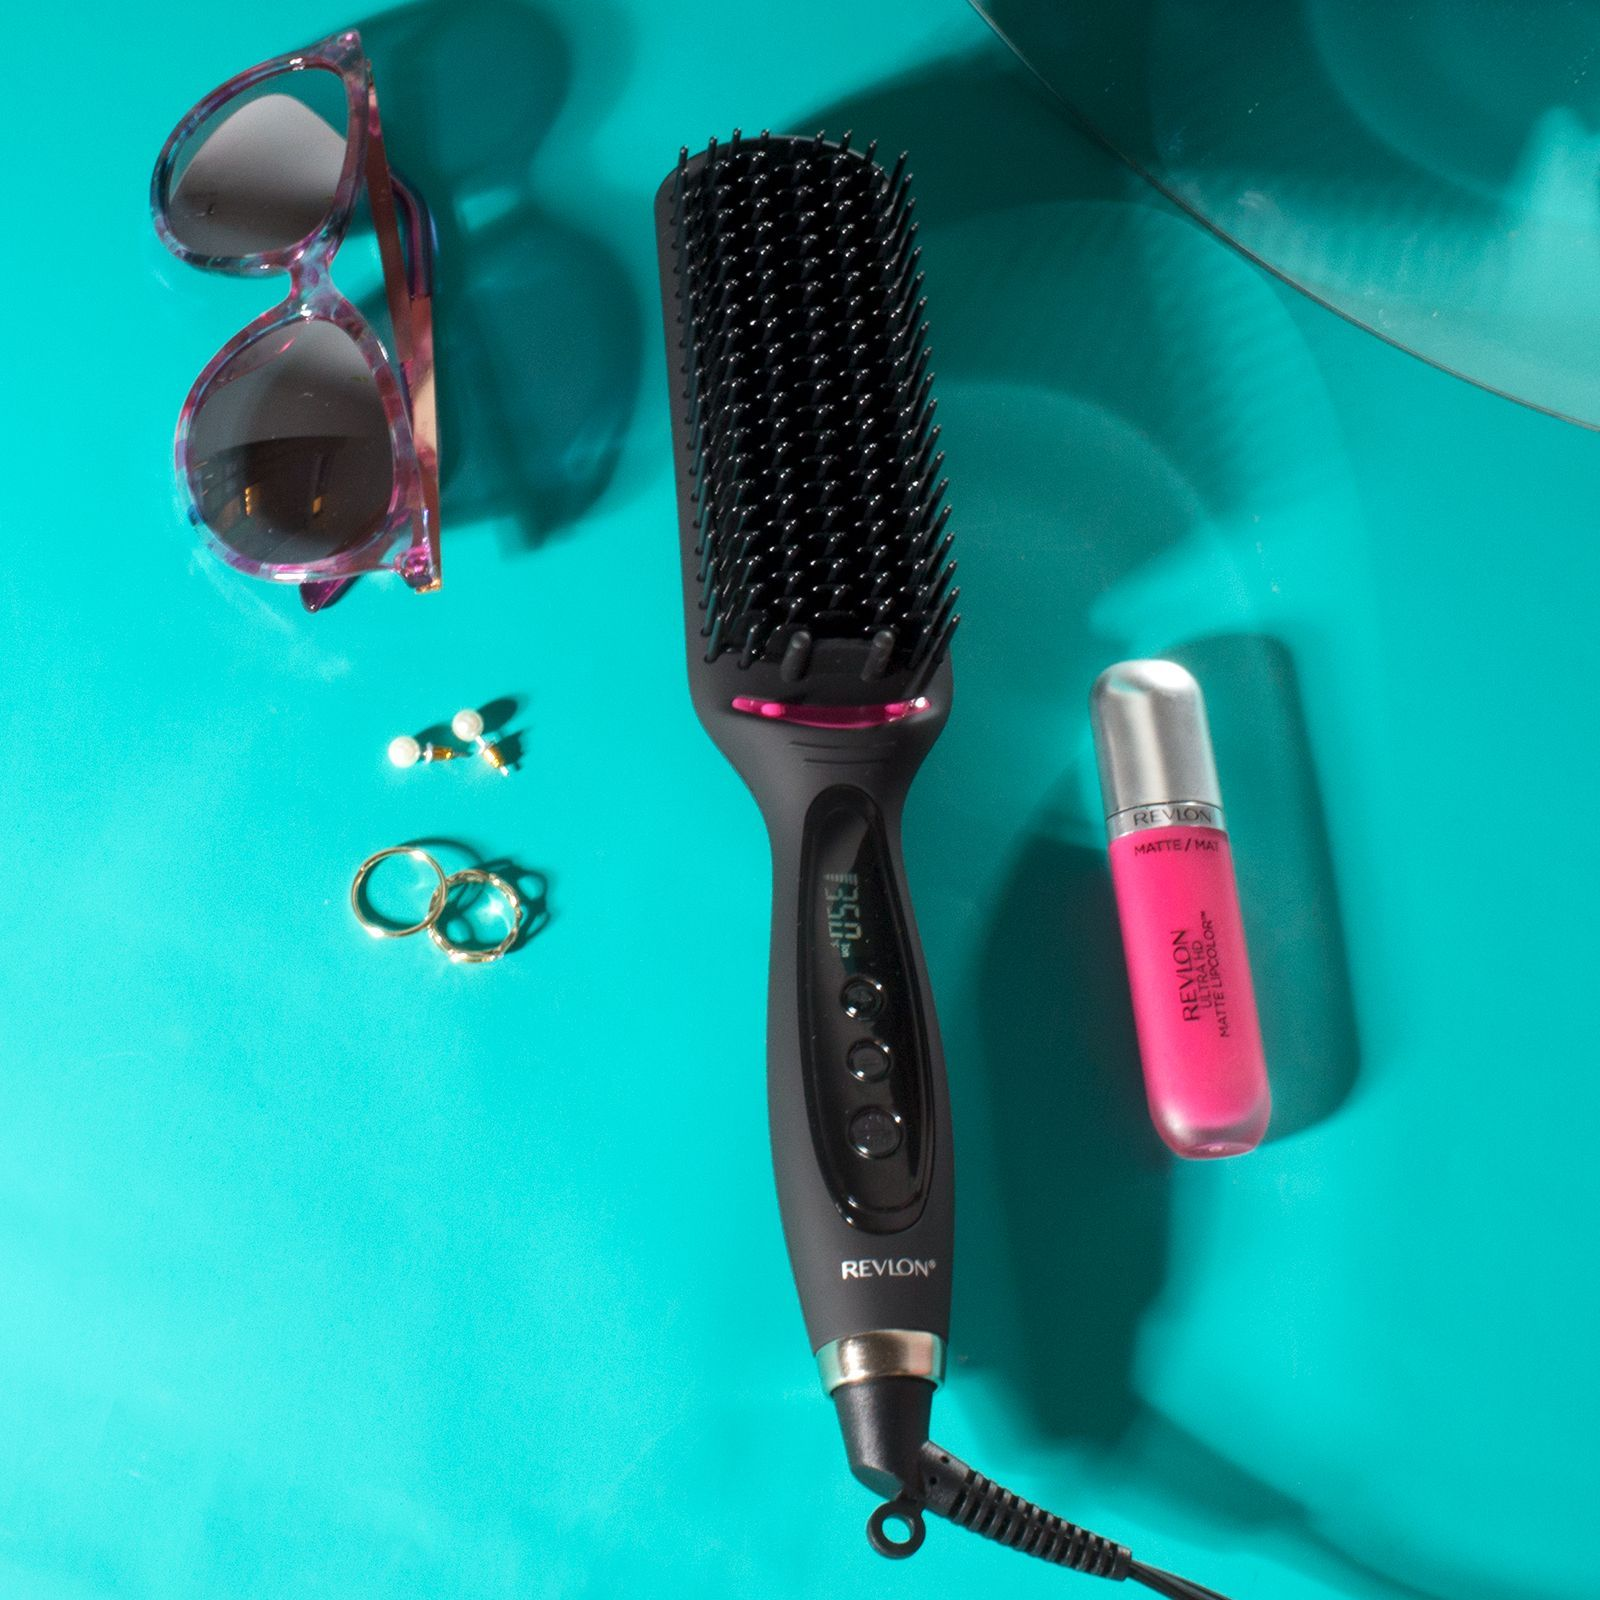 Revlon Ionic Technology Perfect Heat Style Hair Dryer Revlon Hair Dryer Frizz Control Heat Styling Products